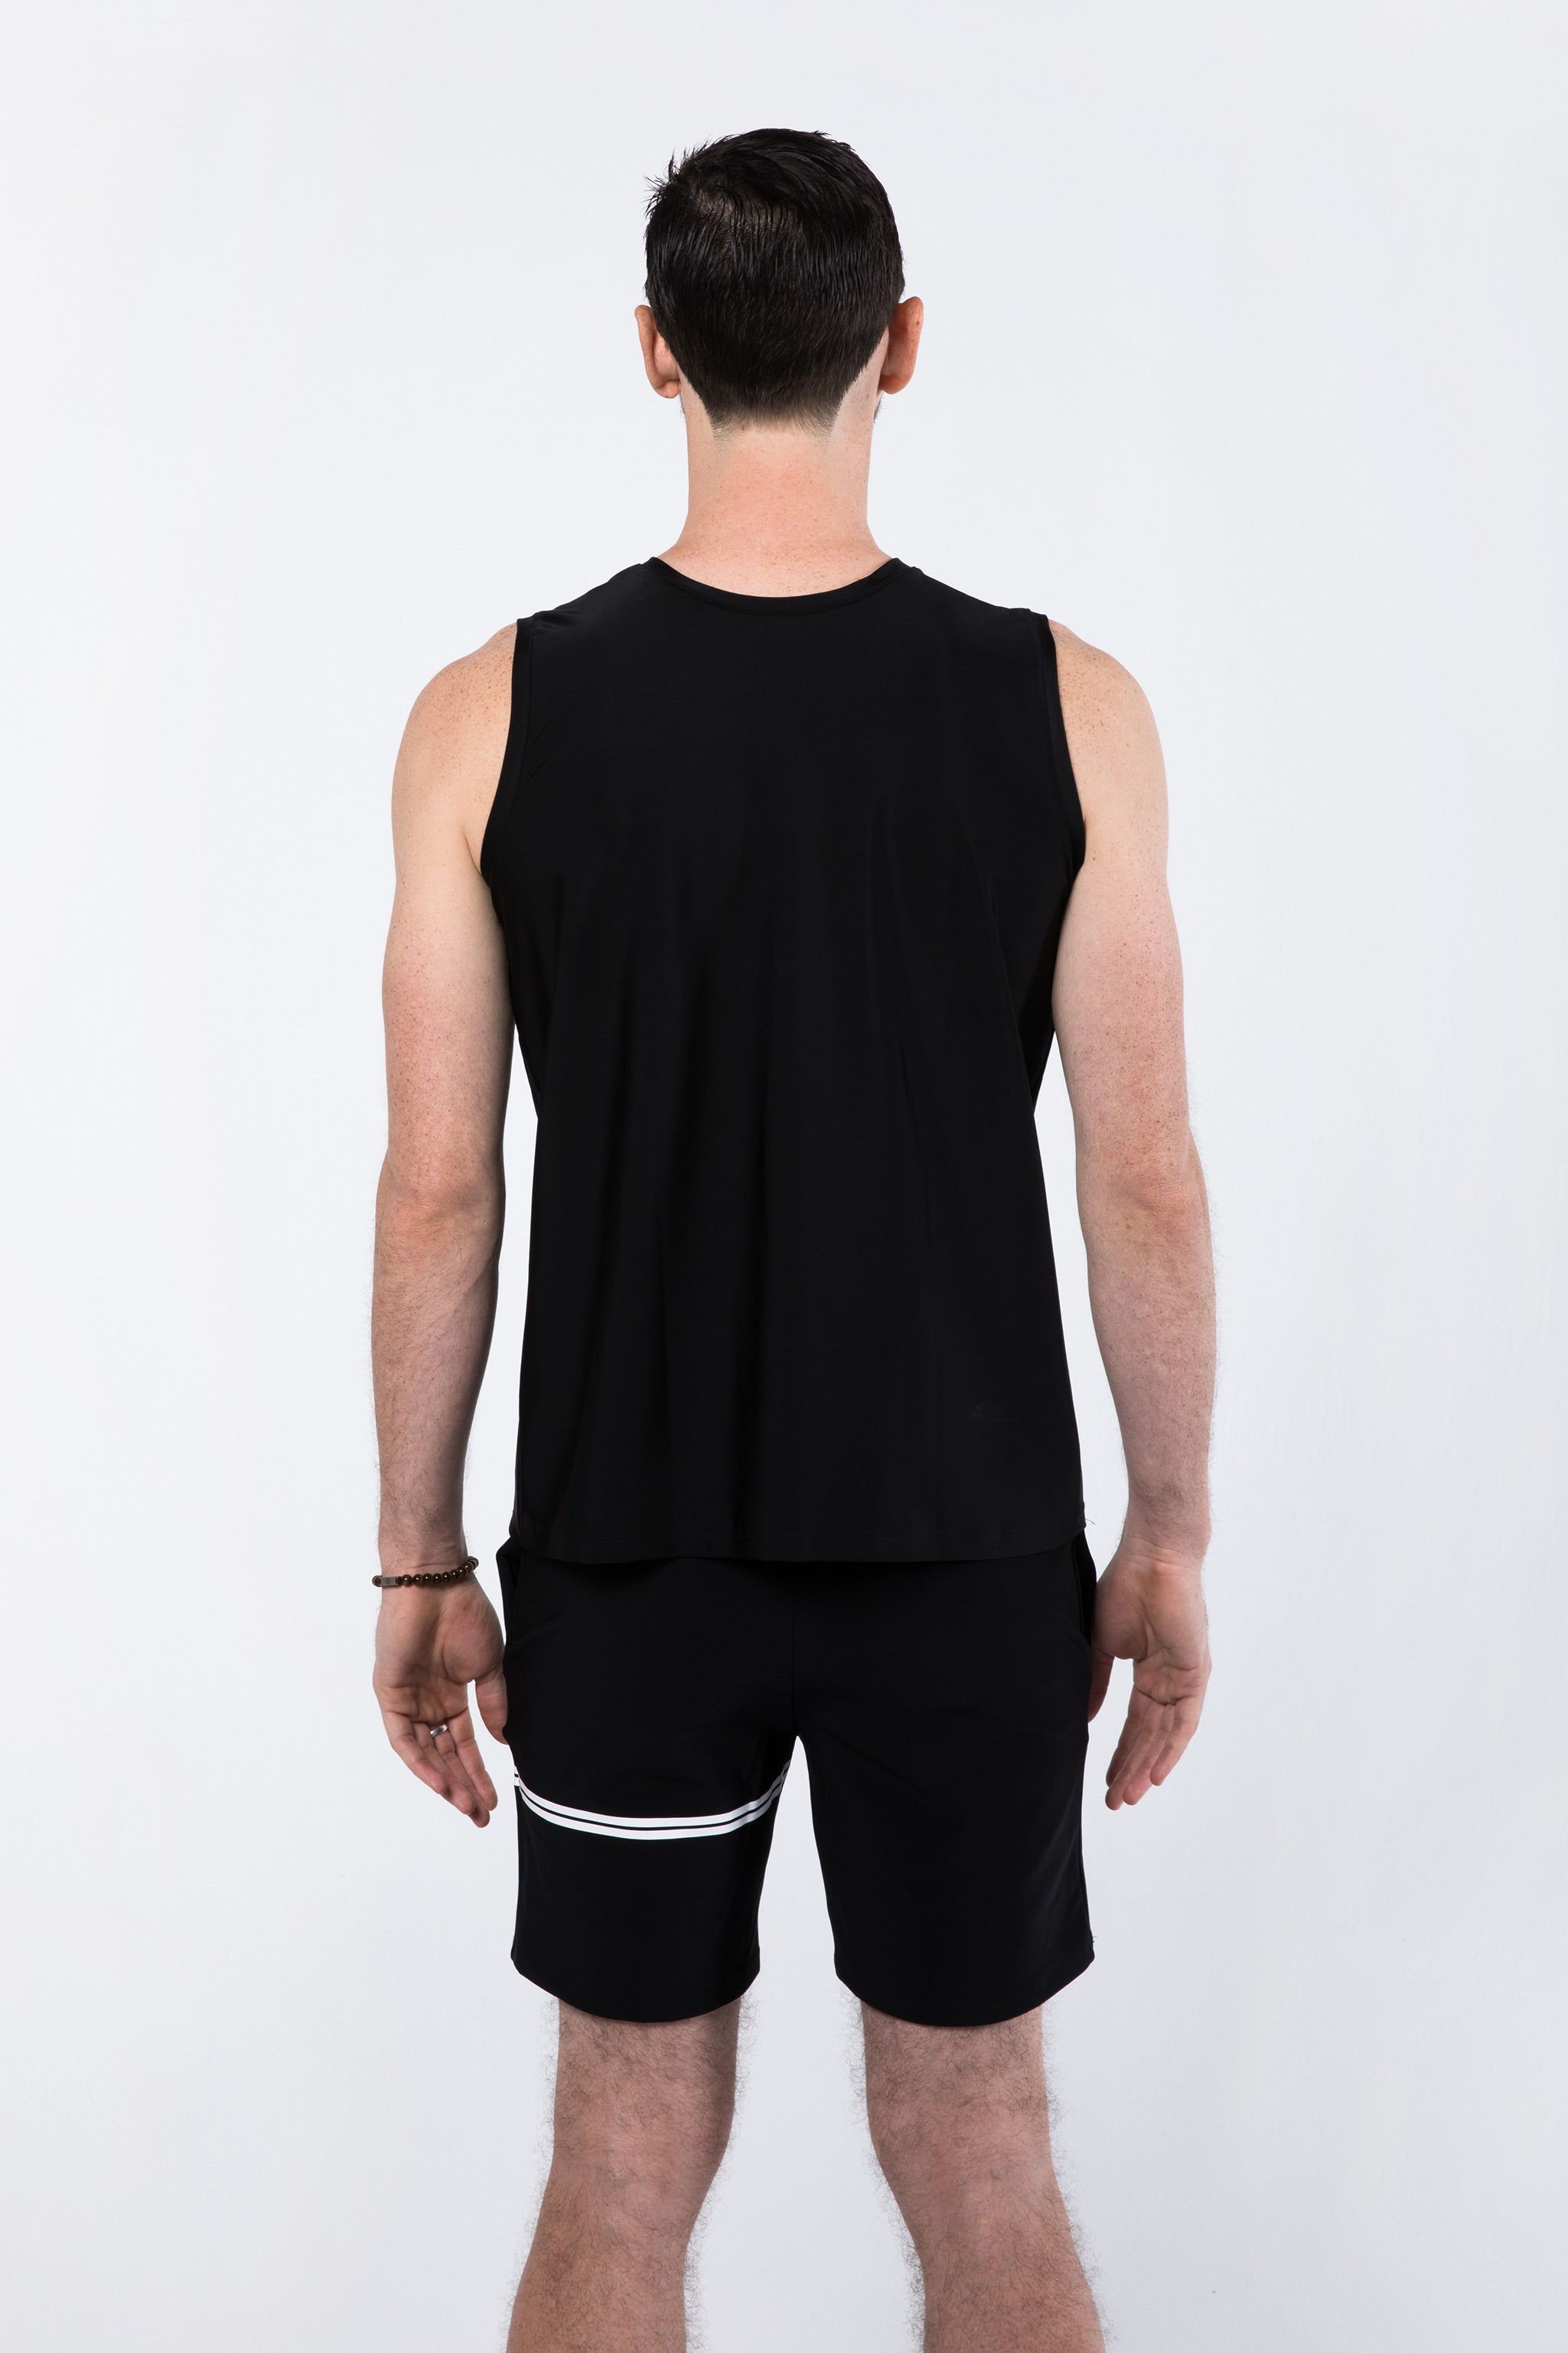 Yoga Wear for Men - Yoga Shorts and Shirt